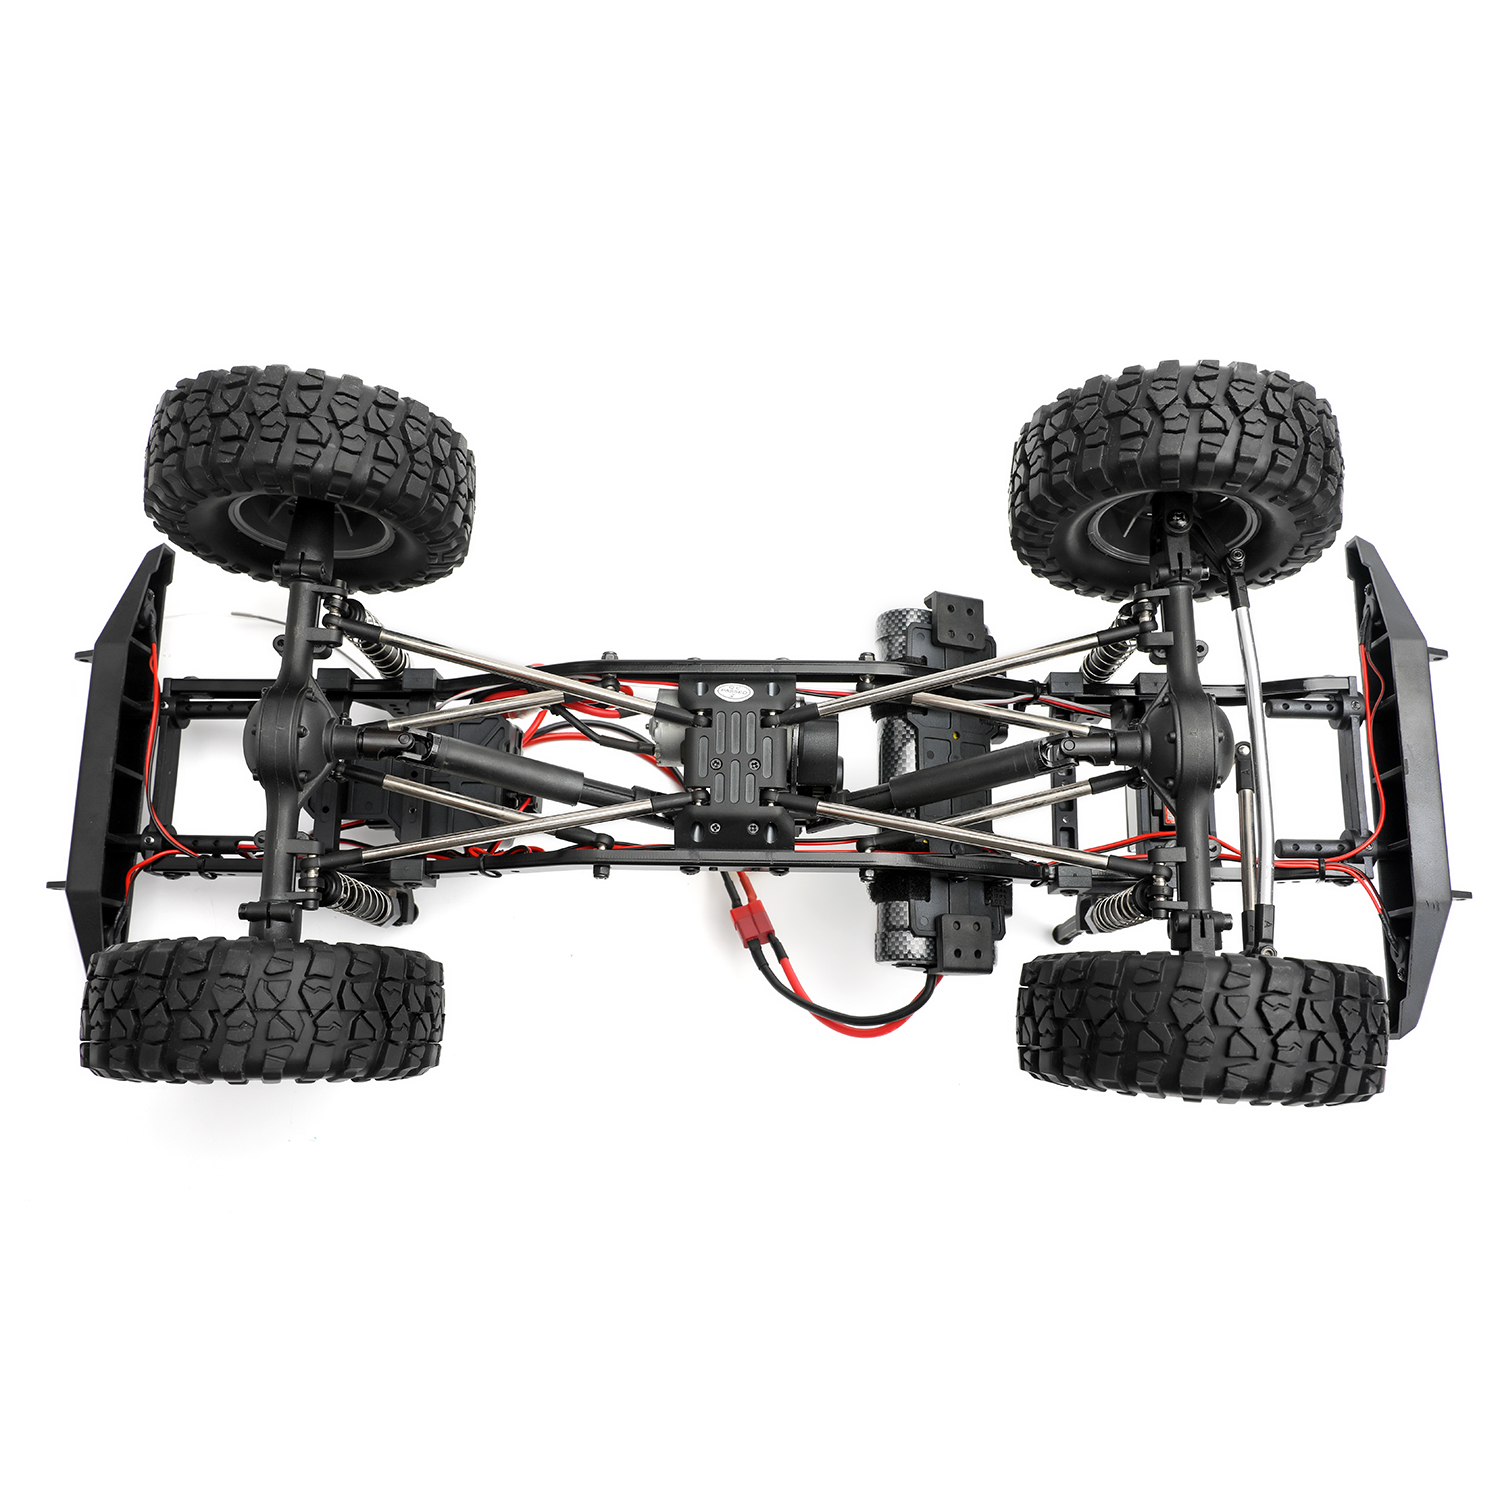 Details about RGT Rc Car Rock Crawler 1/10 Scale 4wd Off Road Climbing RTR  Buggy Monster Truck